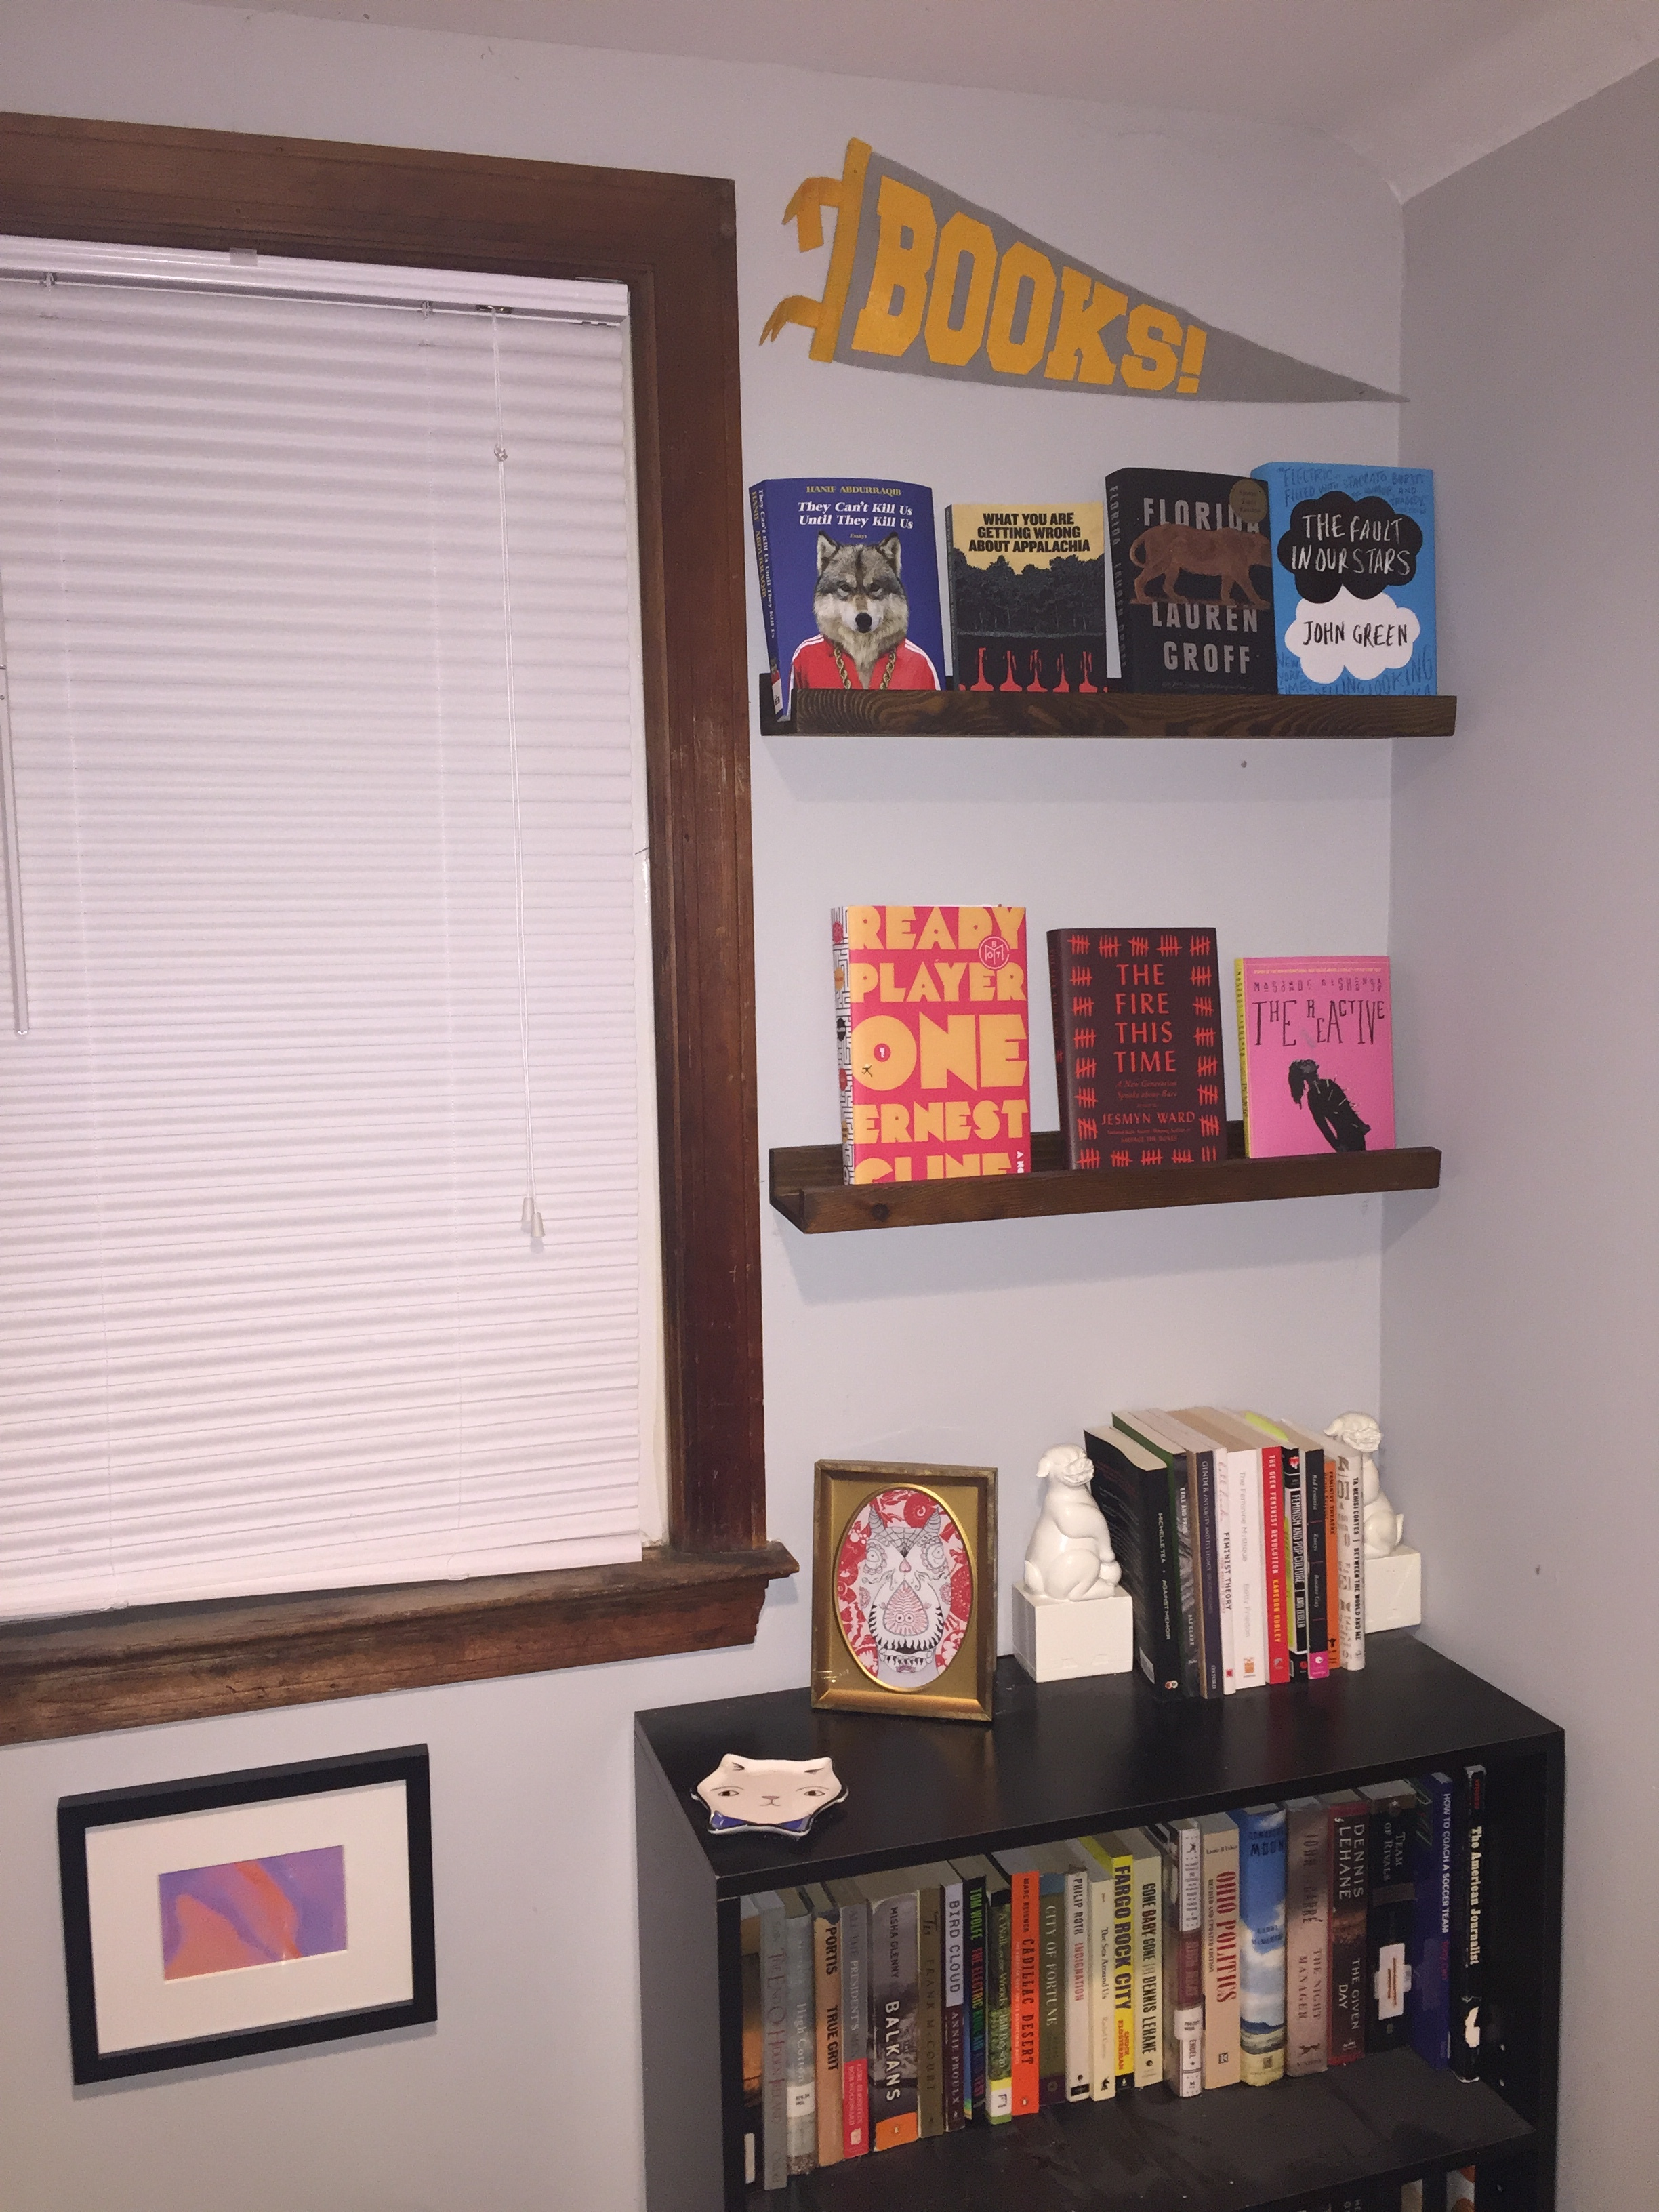 """[image description: a wall with a window, a small black bookshelf, and two display shelves with books facing outward. There are also two framed pieces of abstract art and a small triangular flag that says """"books.""""]"""